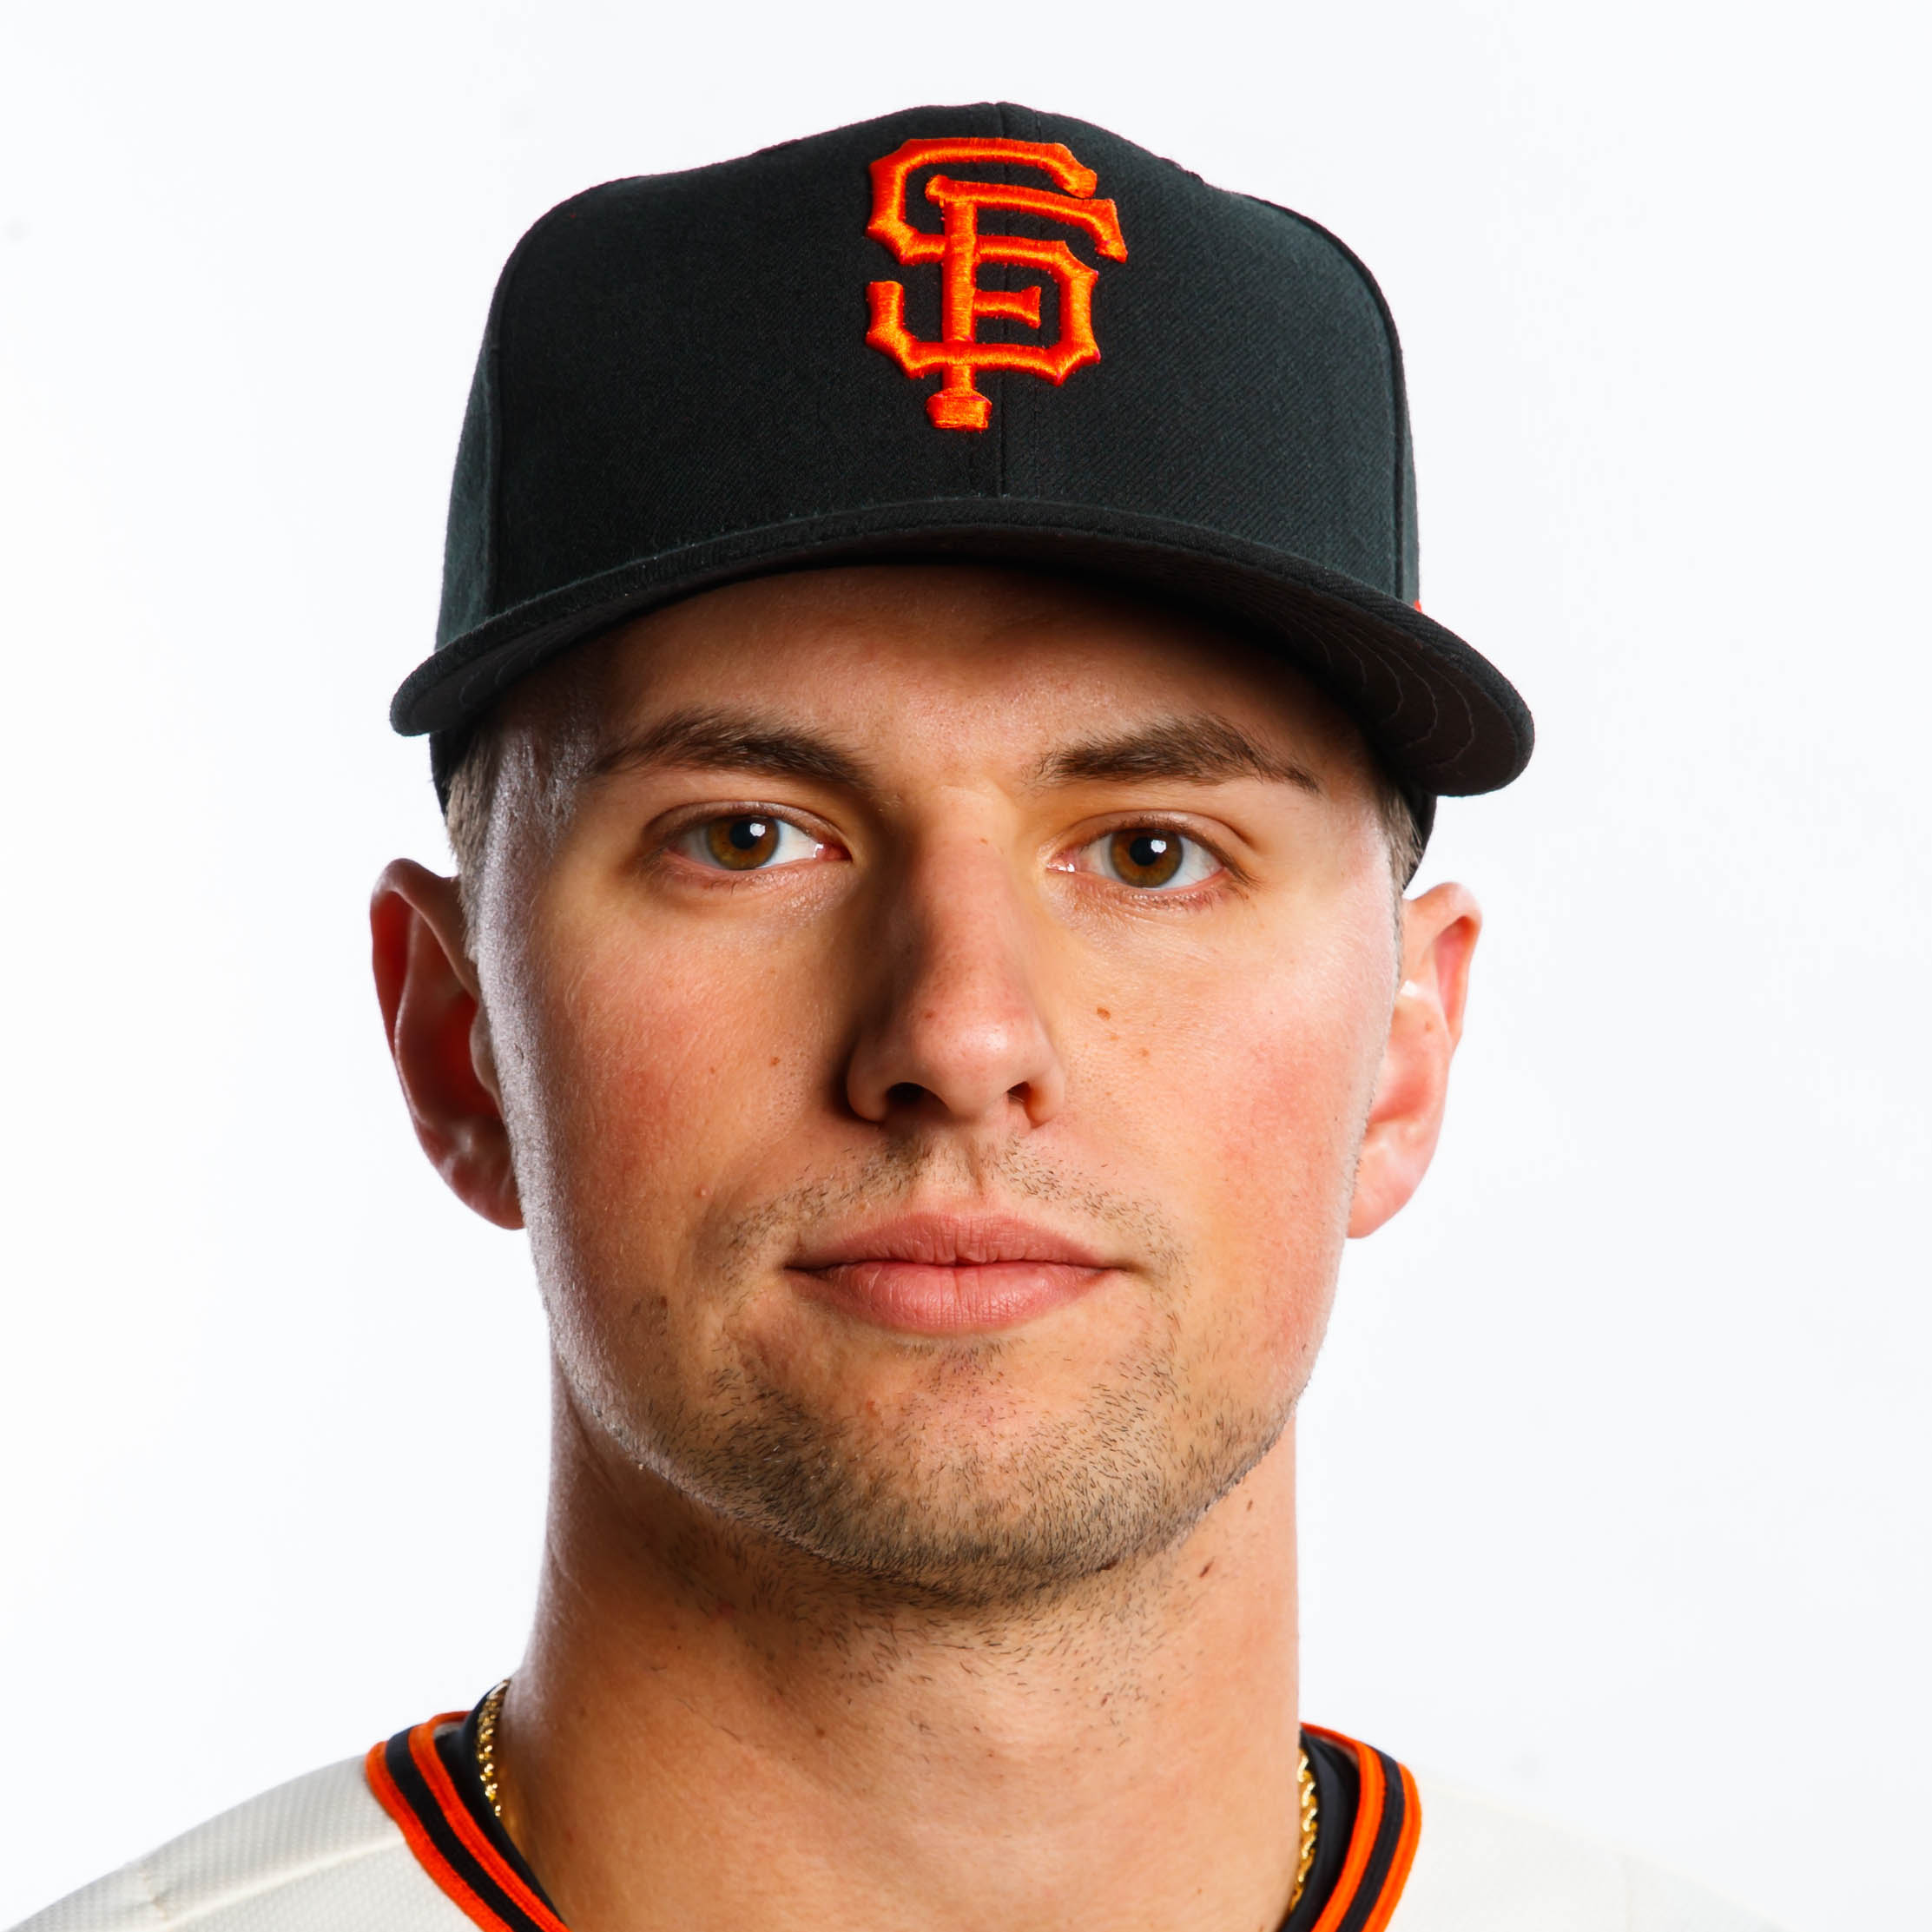 Joe Panik (L) Headshot